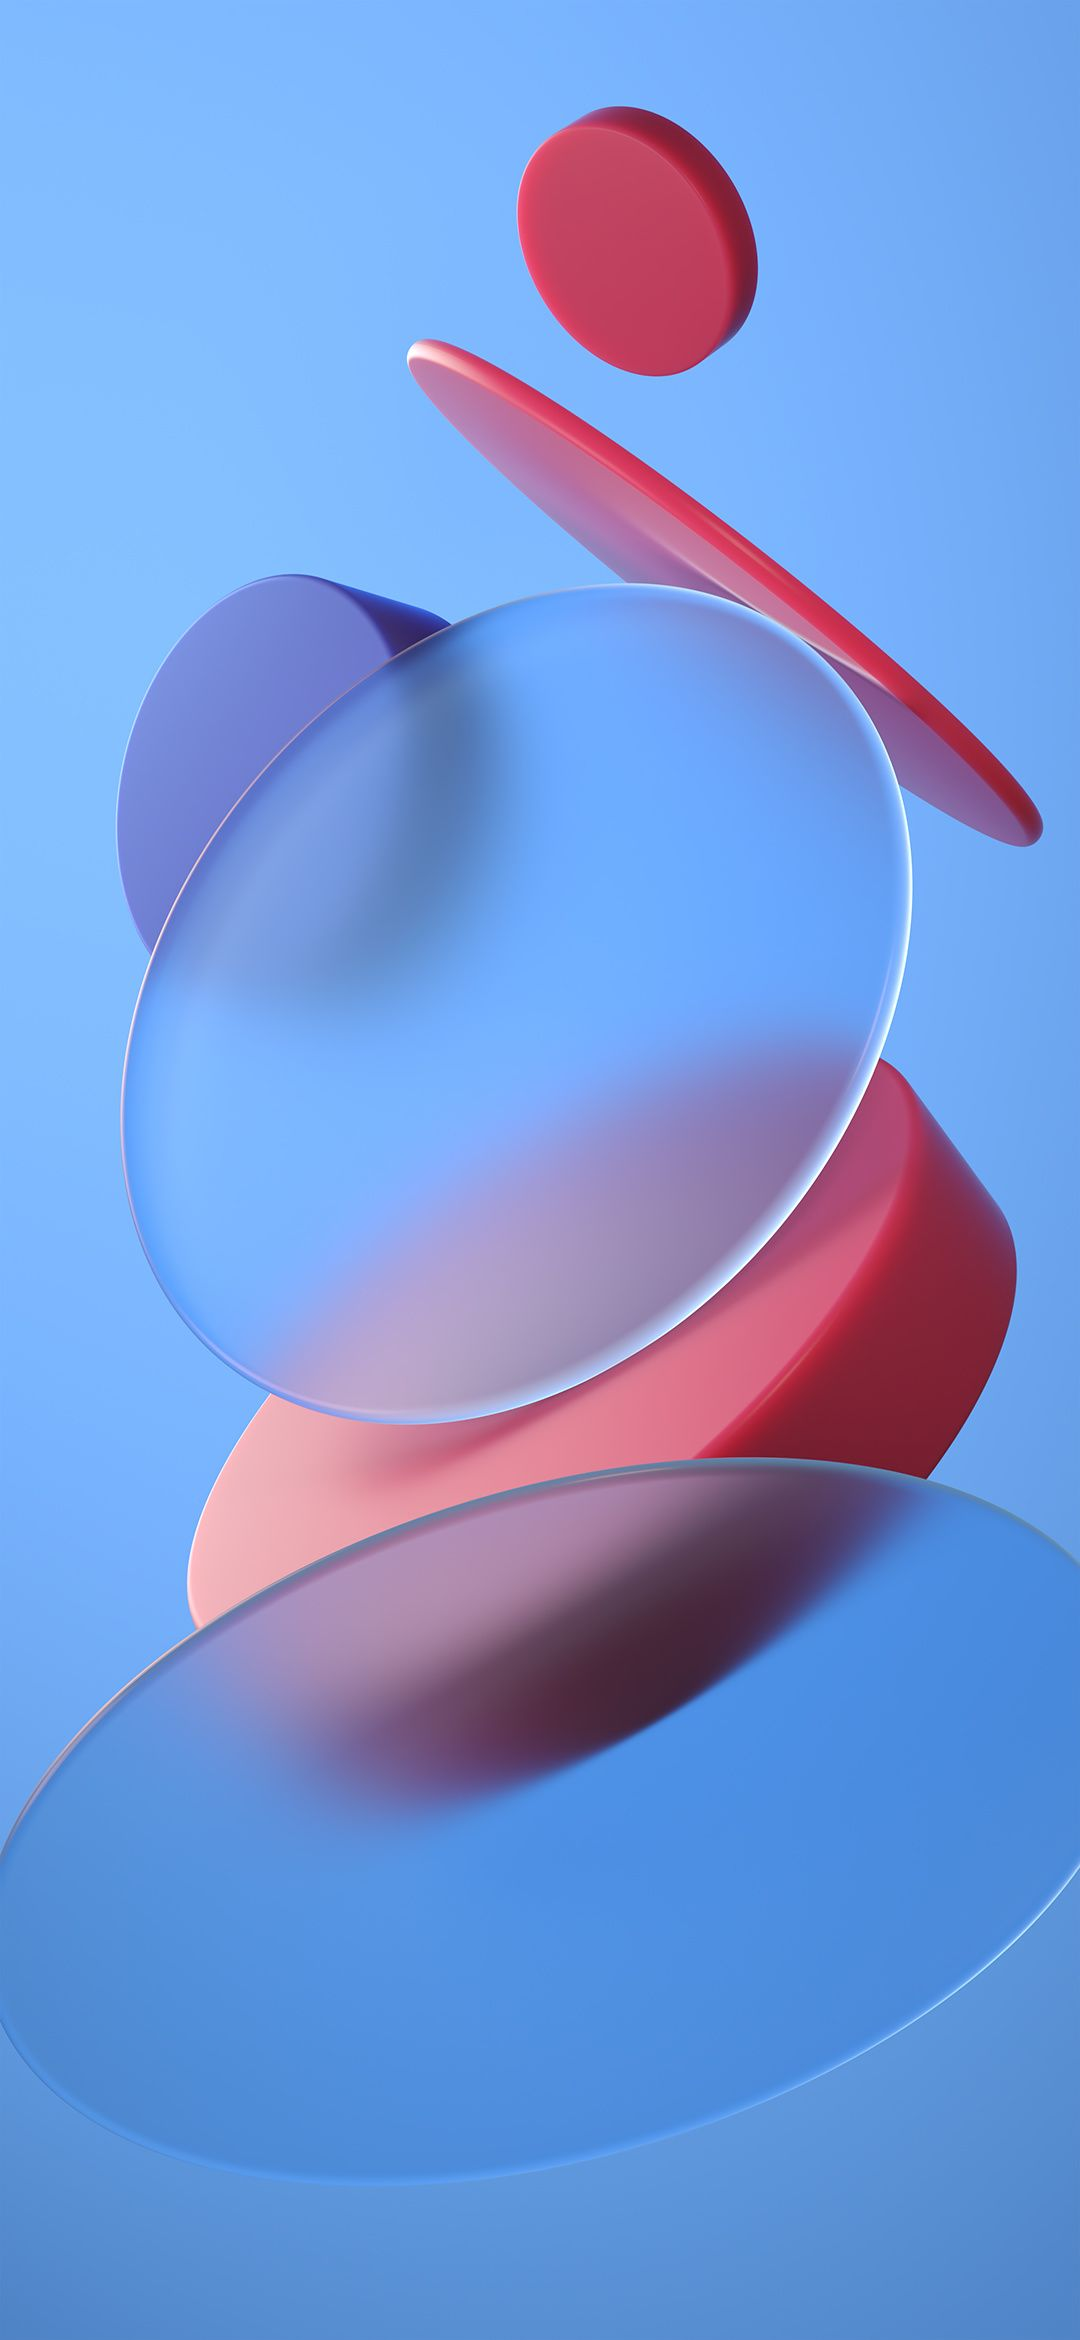 Miui 12 Wallpaper Ytechb Exclusive In 2020 Iphone Wallpaper Ios New Wallpaper Hd Samsung Galaxy Wallpaper